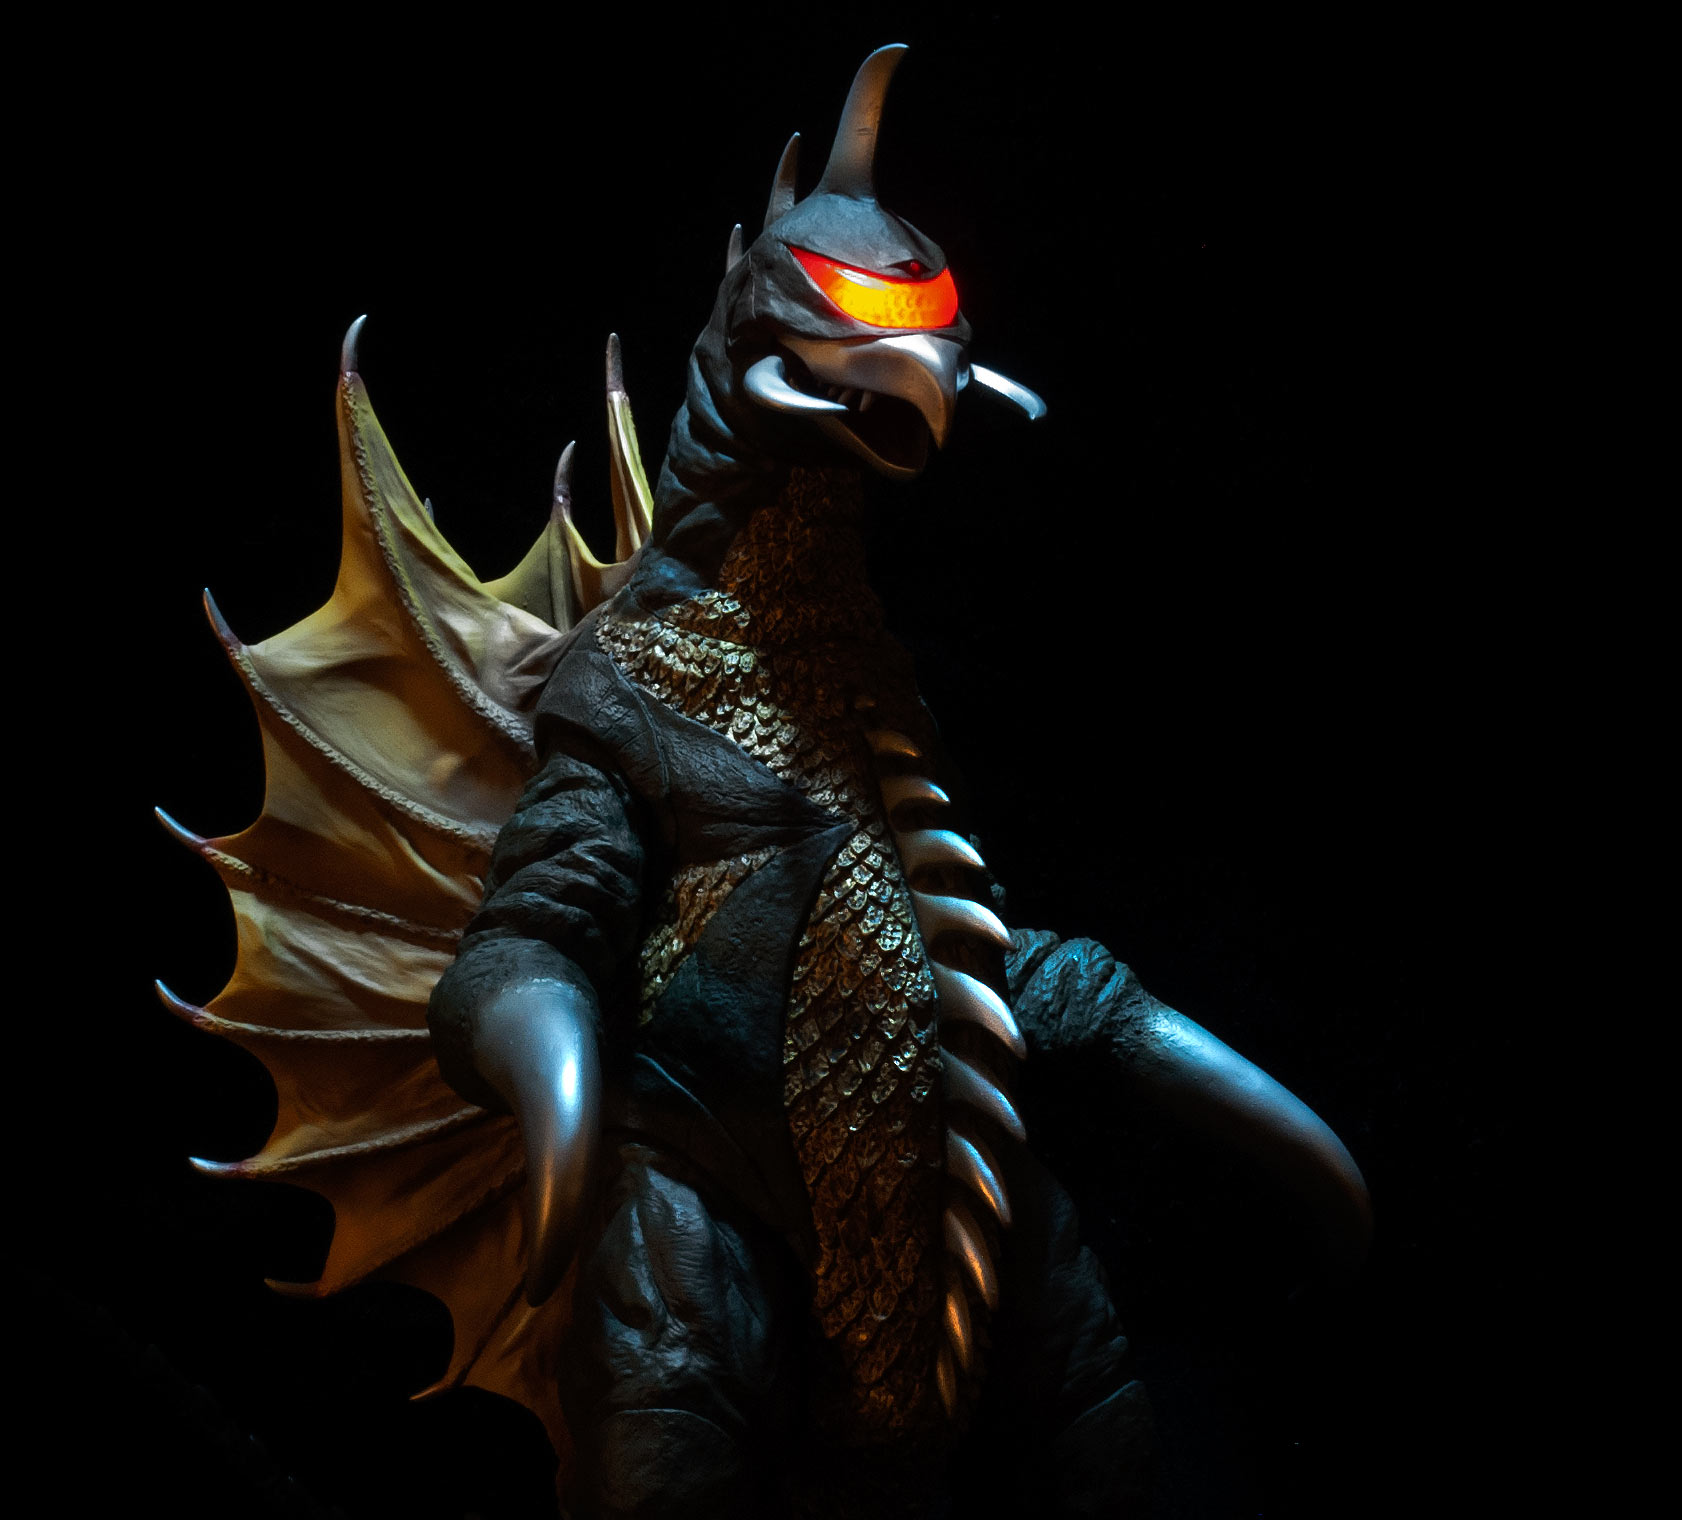 30cm Full Review Toho 30cm Series Gigan 1972 Vinyl Figure By X